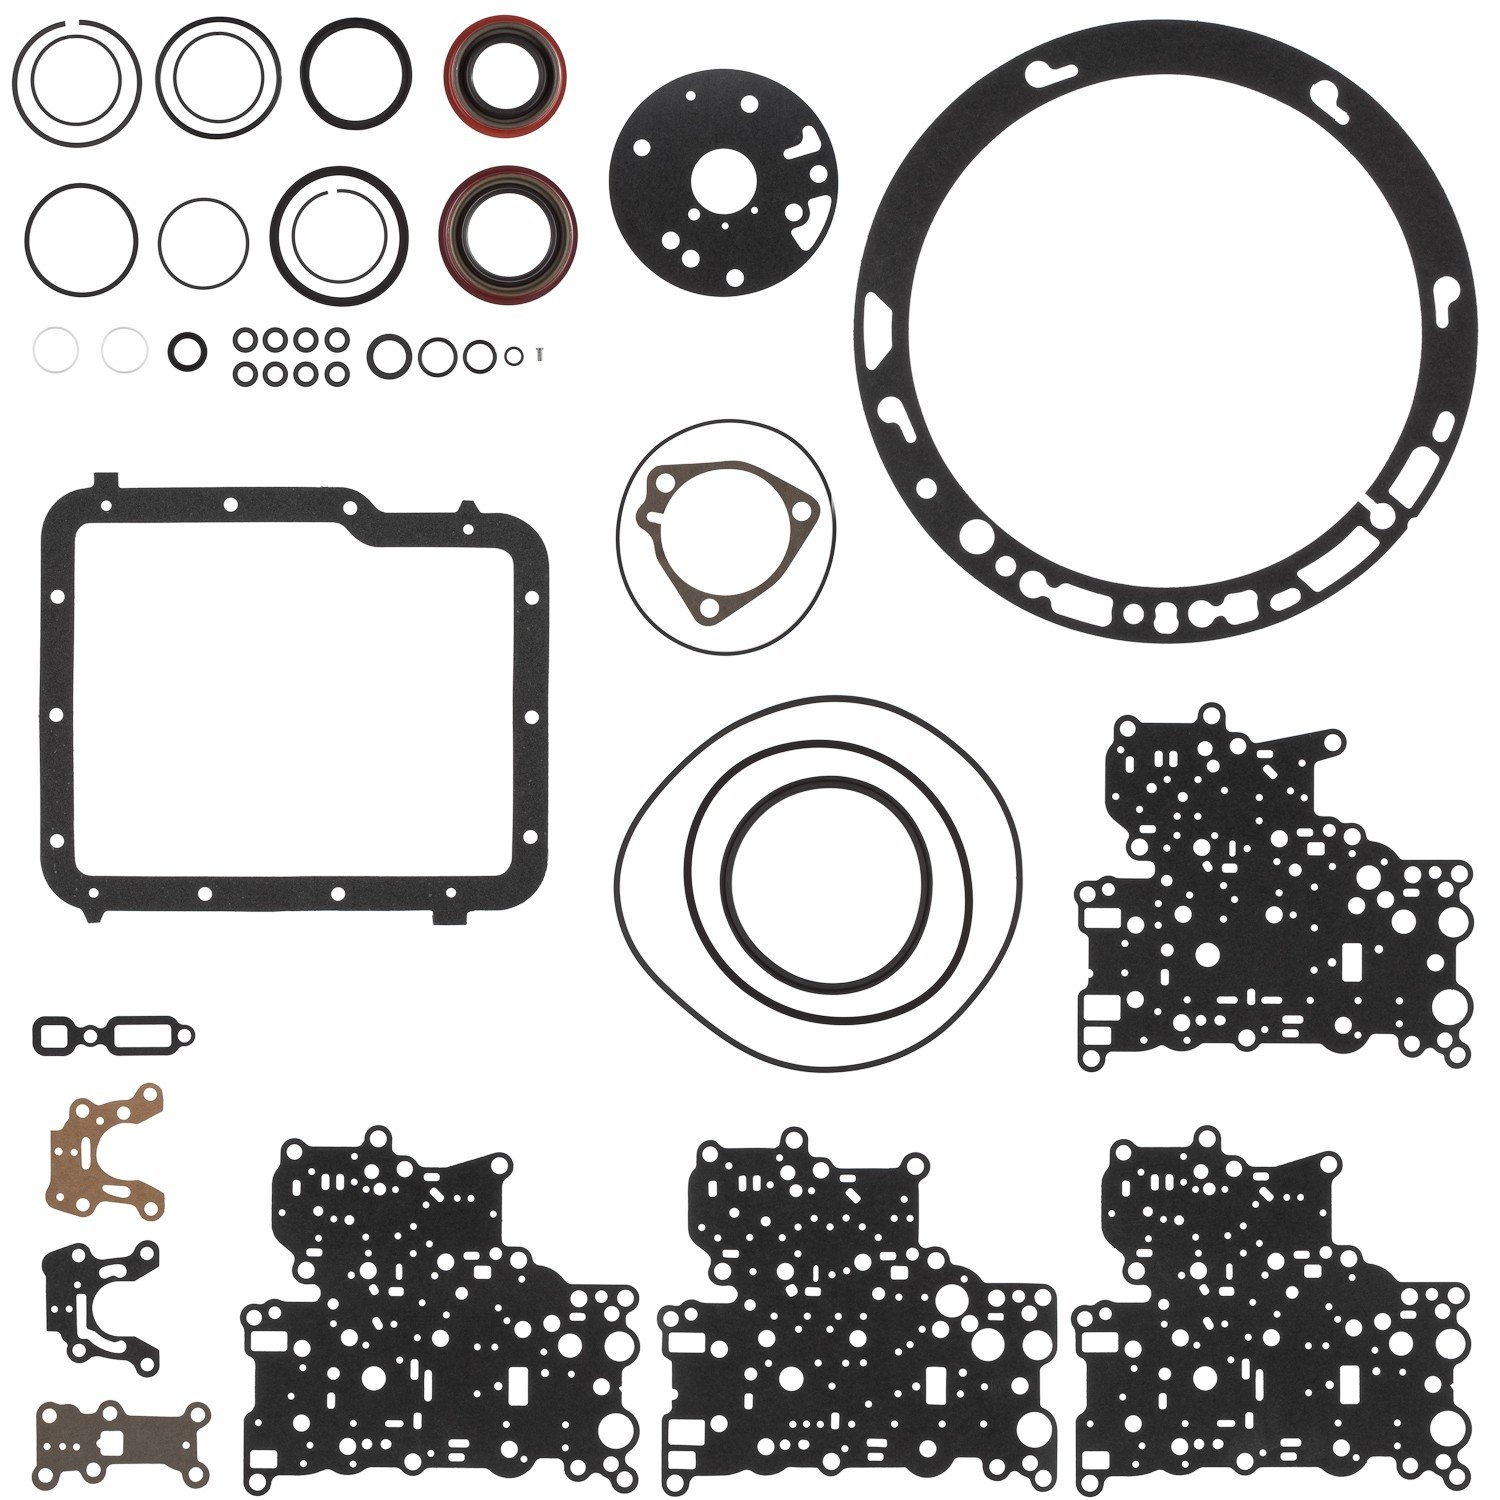 ATP CGS-17 Automatic Transmission Overhaul Kit